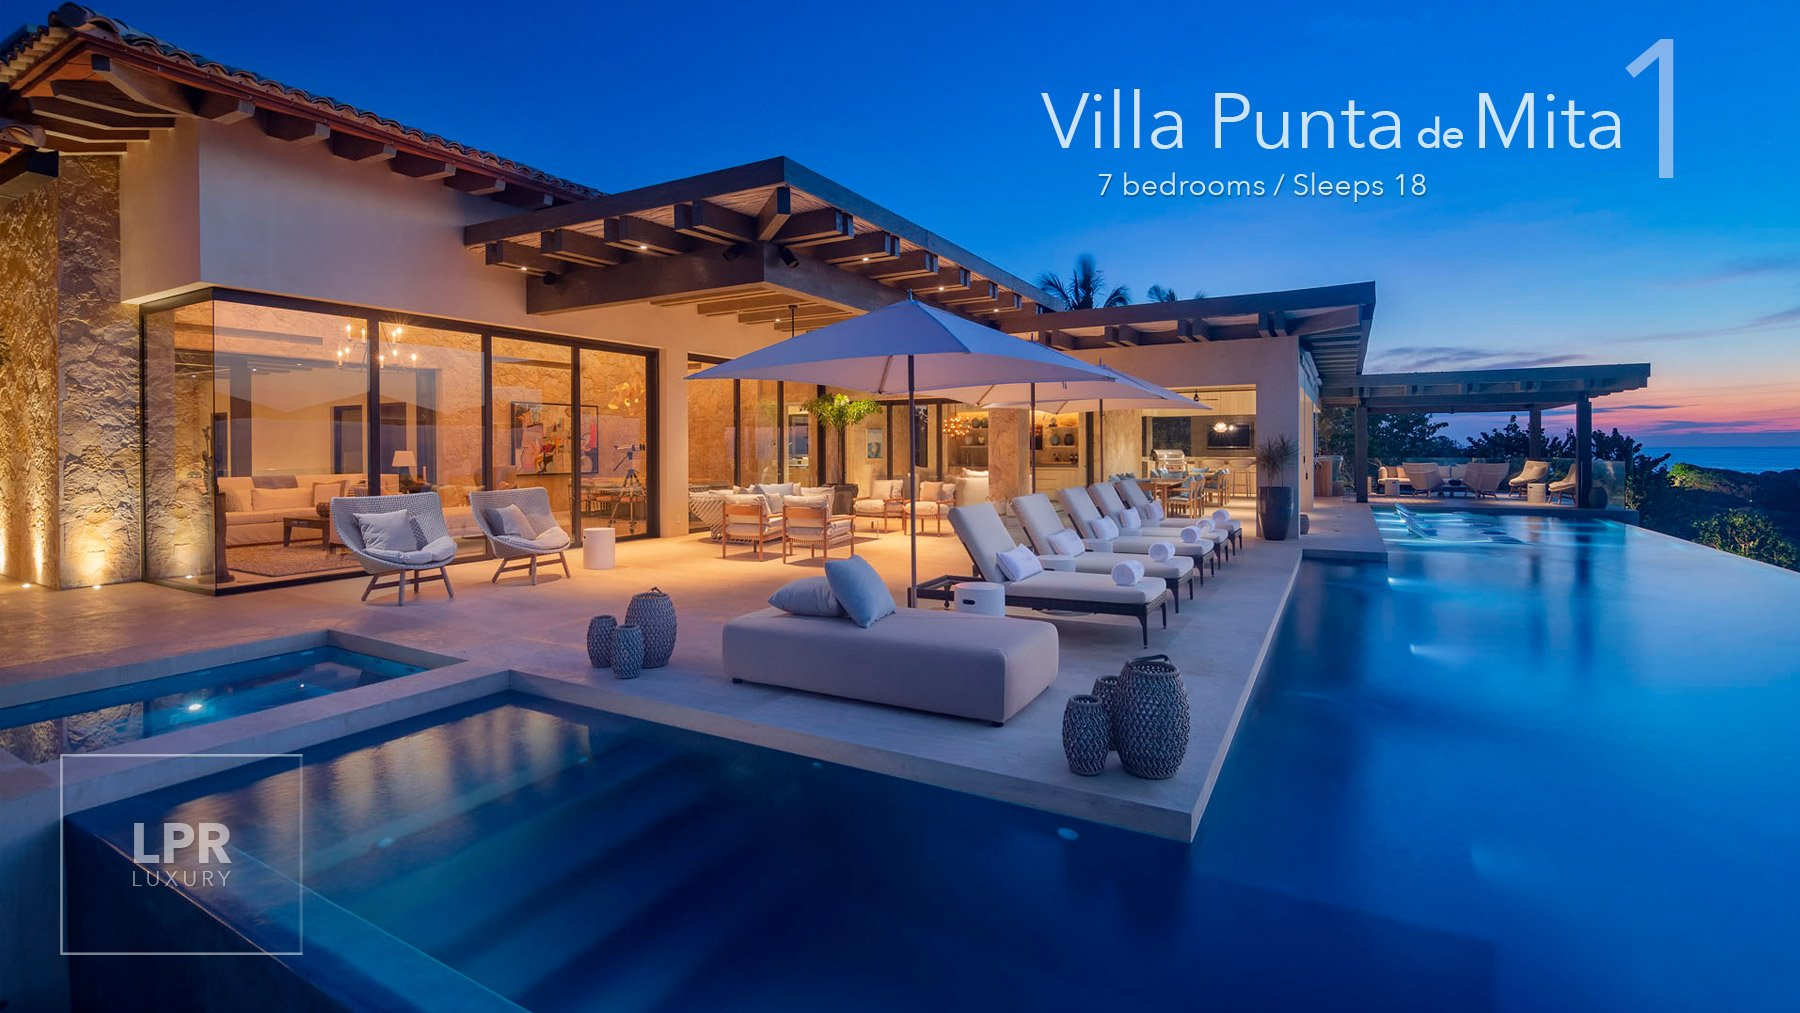 Villa Punta de Mita 1 - Ultra luxury vaction rental villa at the Punta Mita Resort, Mexico